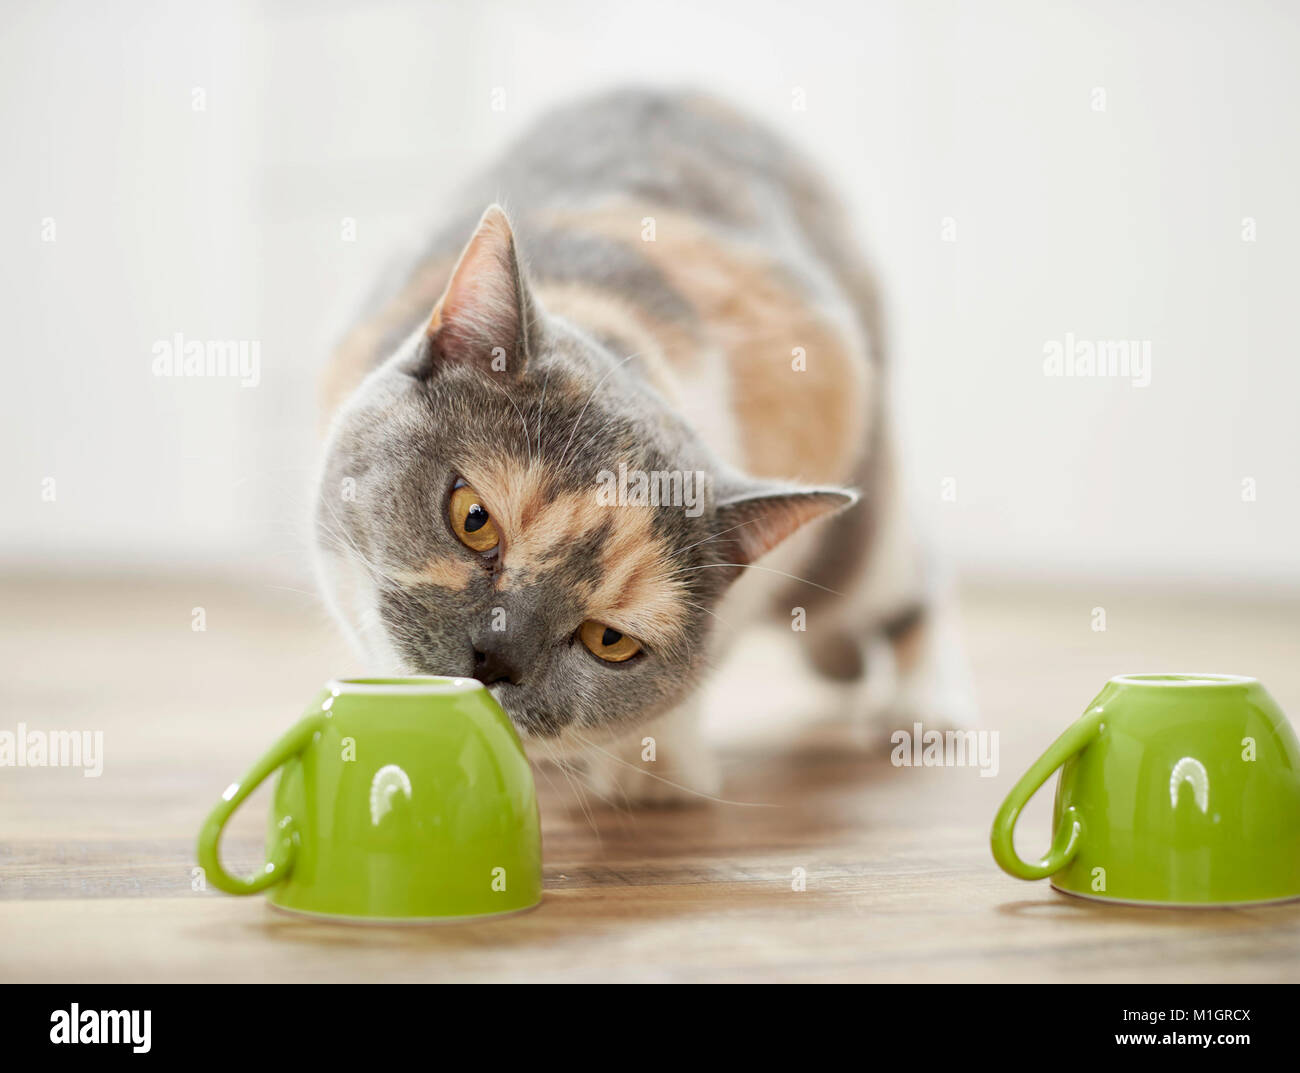 British Shorthair cat. Tricolored adult playing a shell game. Germany - Stock Image